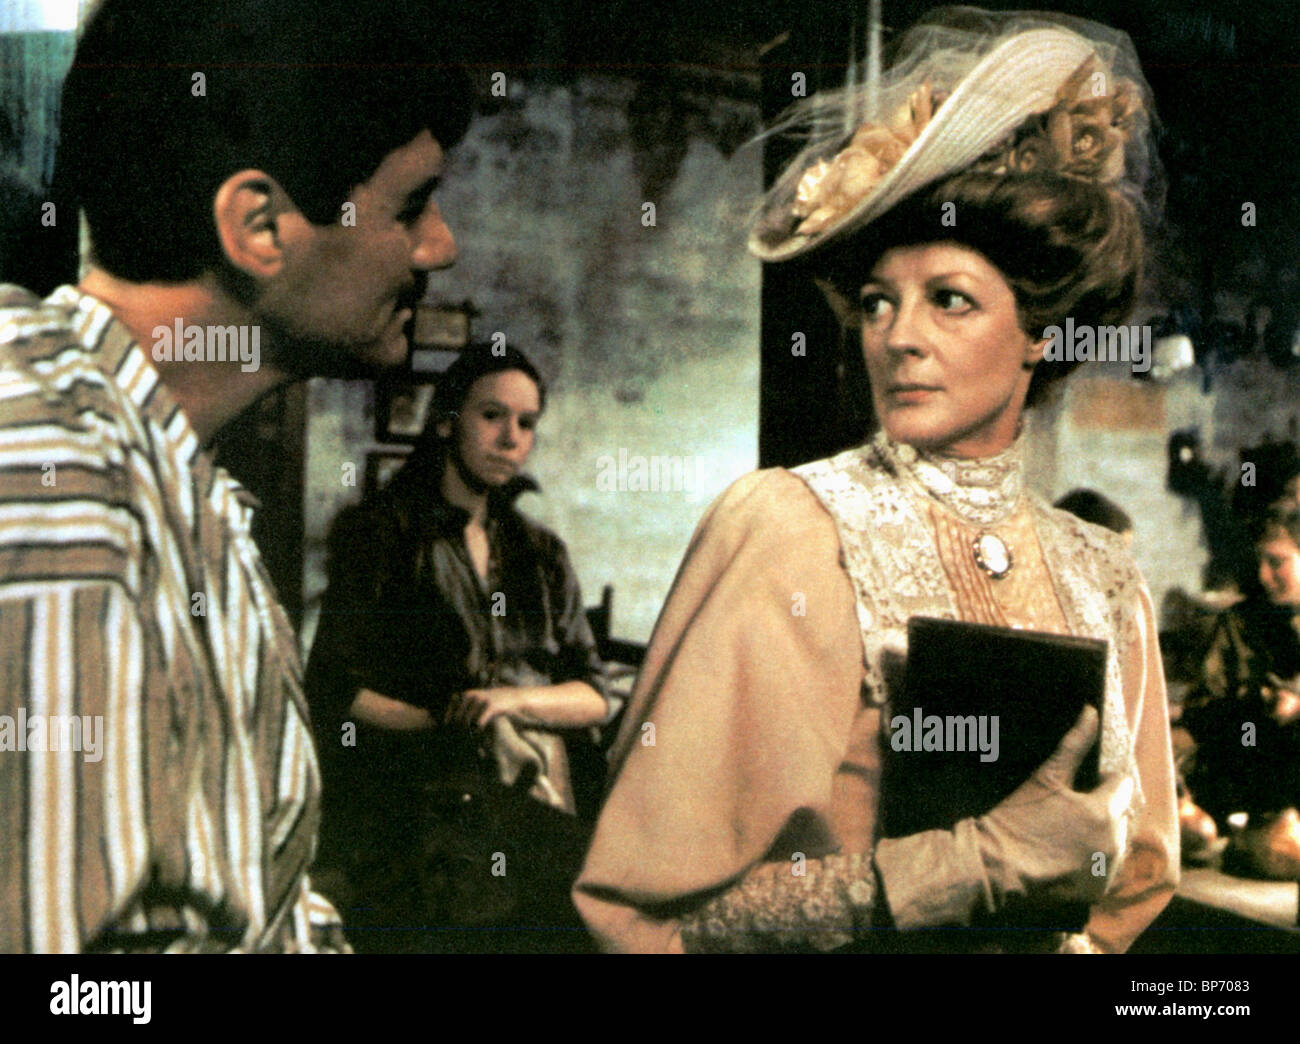 MICHAEL PALIN, MAGGIE SMITH, THE MISSIONARY, 1982 - Stock Image